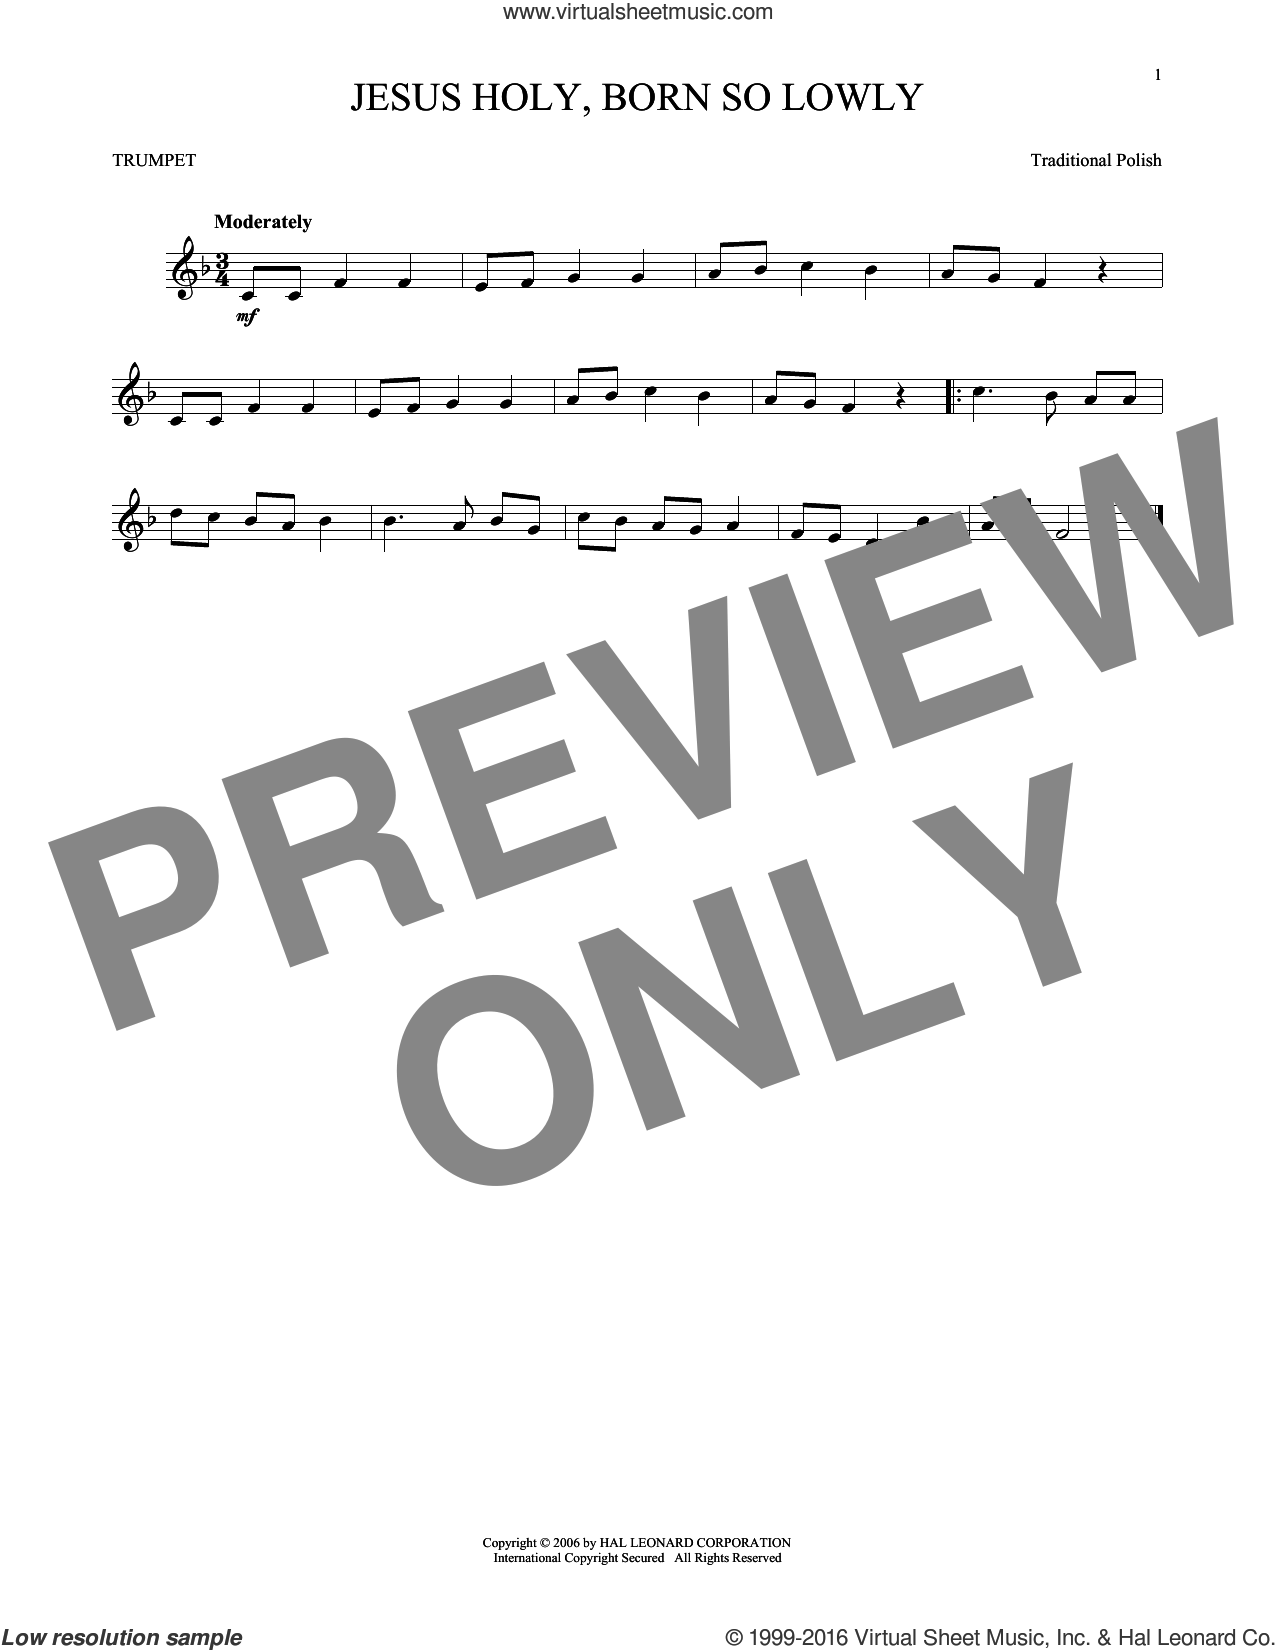 Jesus Holy, Born So Lowly sheet music for trumpet solo. Score Image Preview.